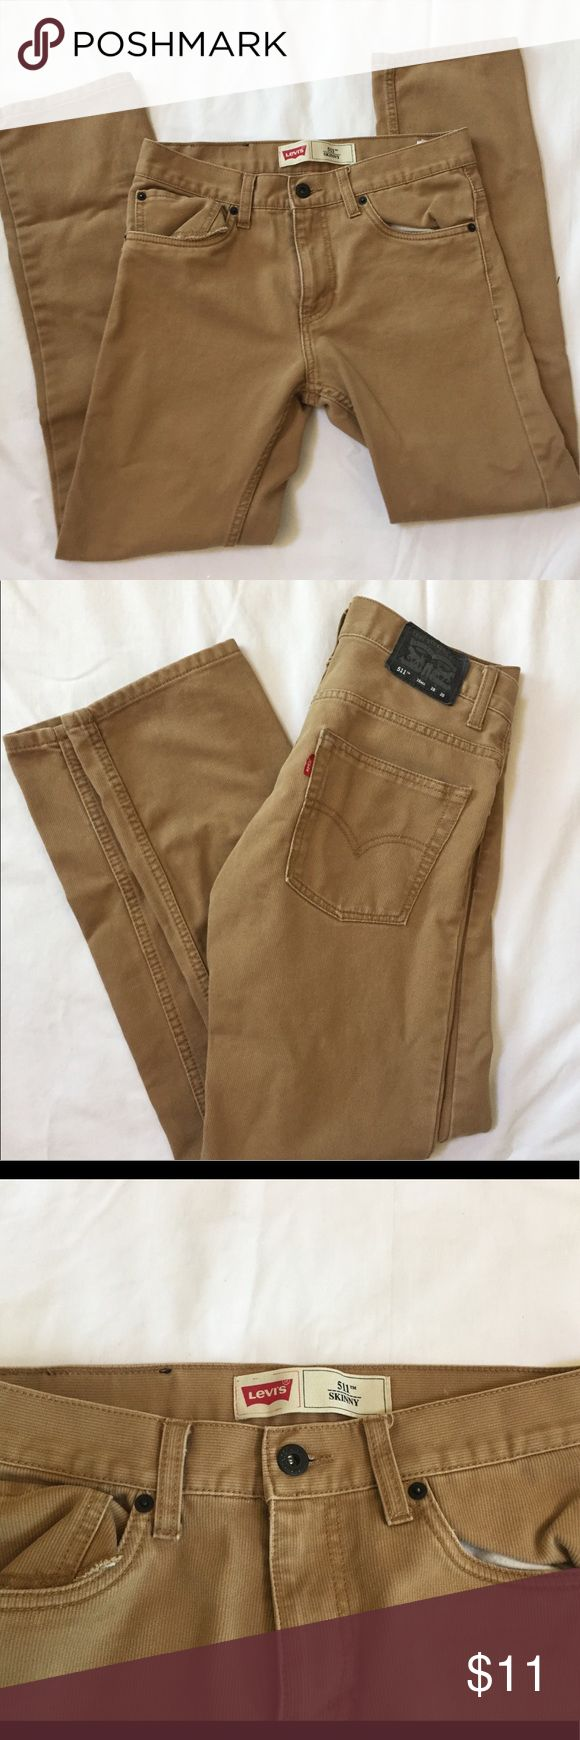 "Girl's Levi's 511 Skinny Fit Tan pants 28 x 28 Item: Kids Girls Levi's 511 Skinny light brown pants.   Measurements:  Size on Tag: 16 Regular Inseam: 28"" Waist: 28""  Condition: In overall great shape.   A few details:  -Back Levi's tag peeling off a little -Otherwise in near new shape, no other signs of wear or tear, bottom of the pant legs intact and show no signs of scuffing or wear.   All my items are from a smoke free environment. Levi's Bottoms Casual"